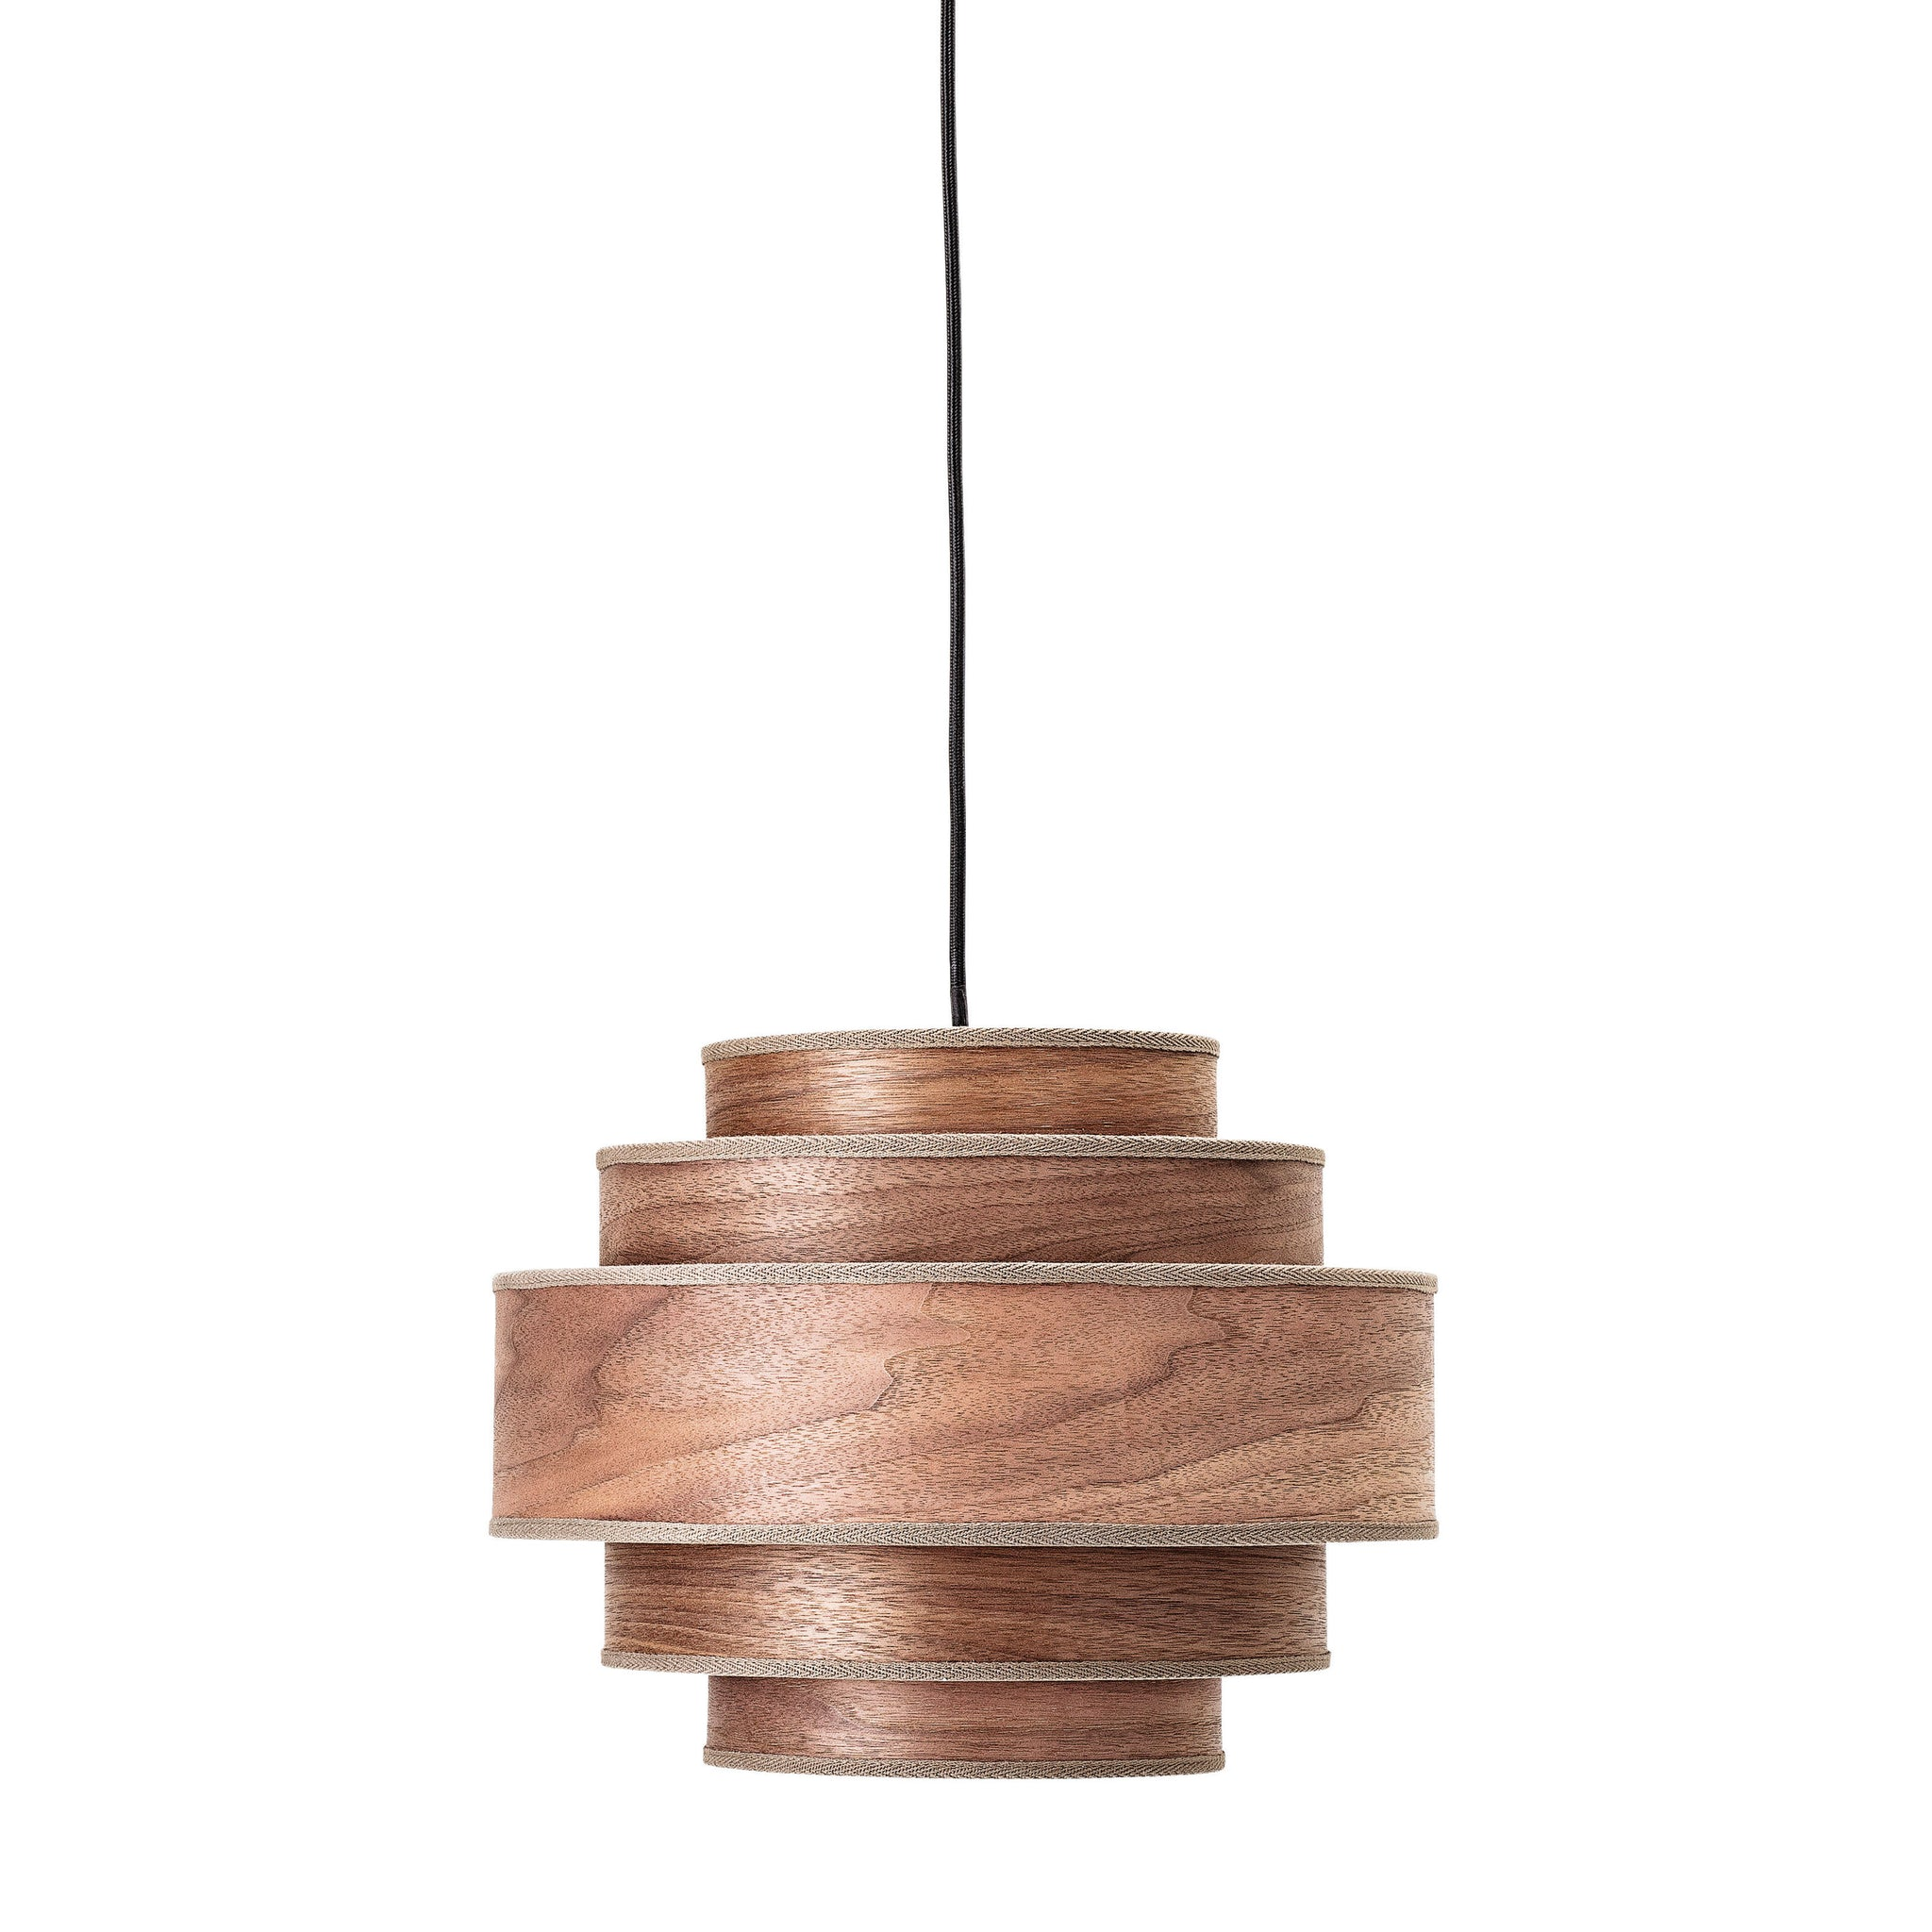 Walnut Veneer Pendant Light with Fabric Edging